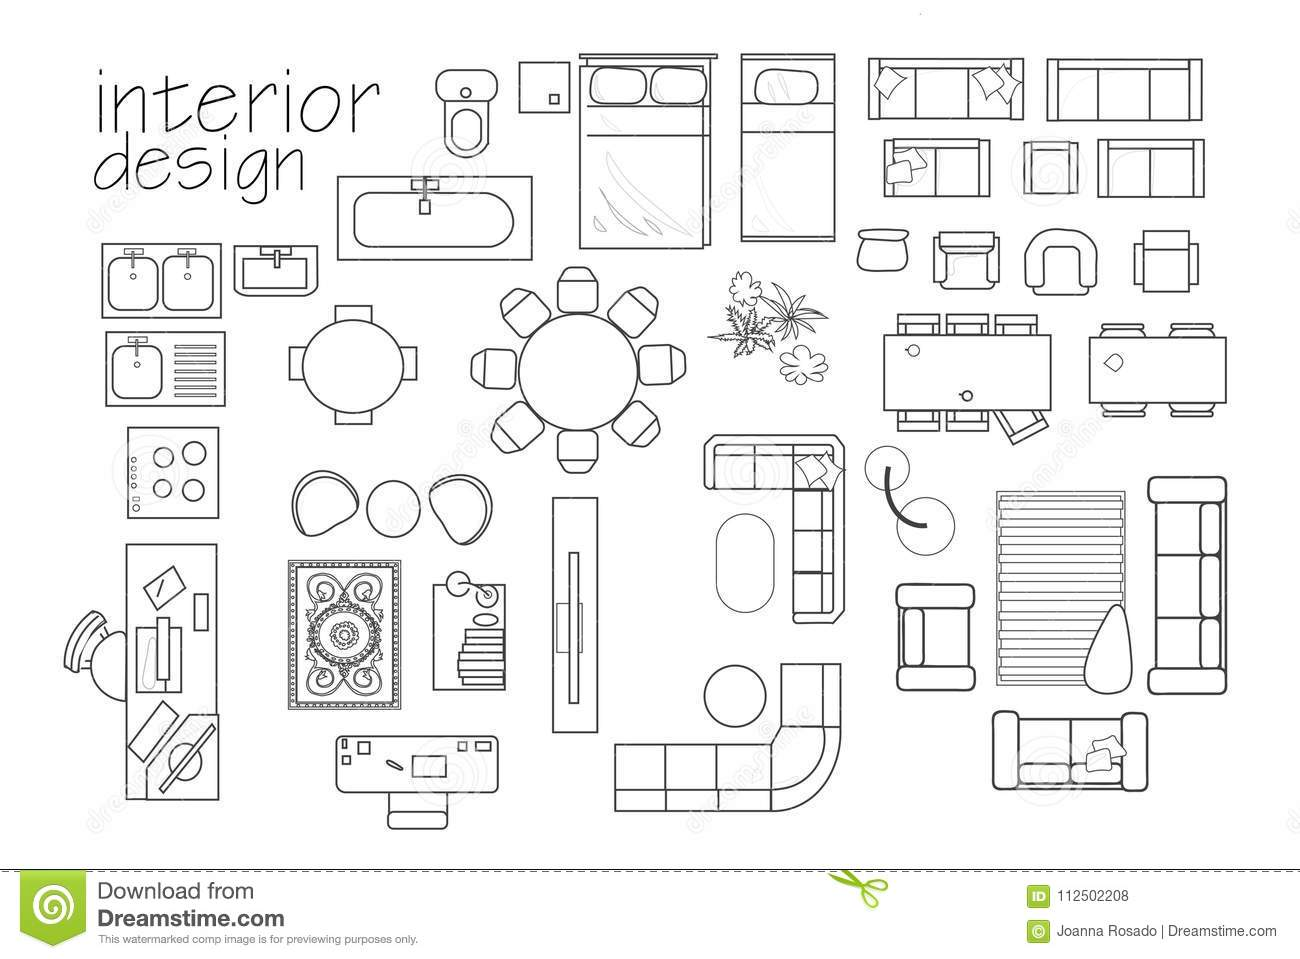 Interior design floor plan symbols top view furniture cad symbol